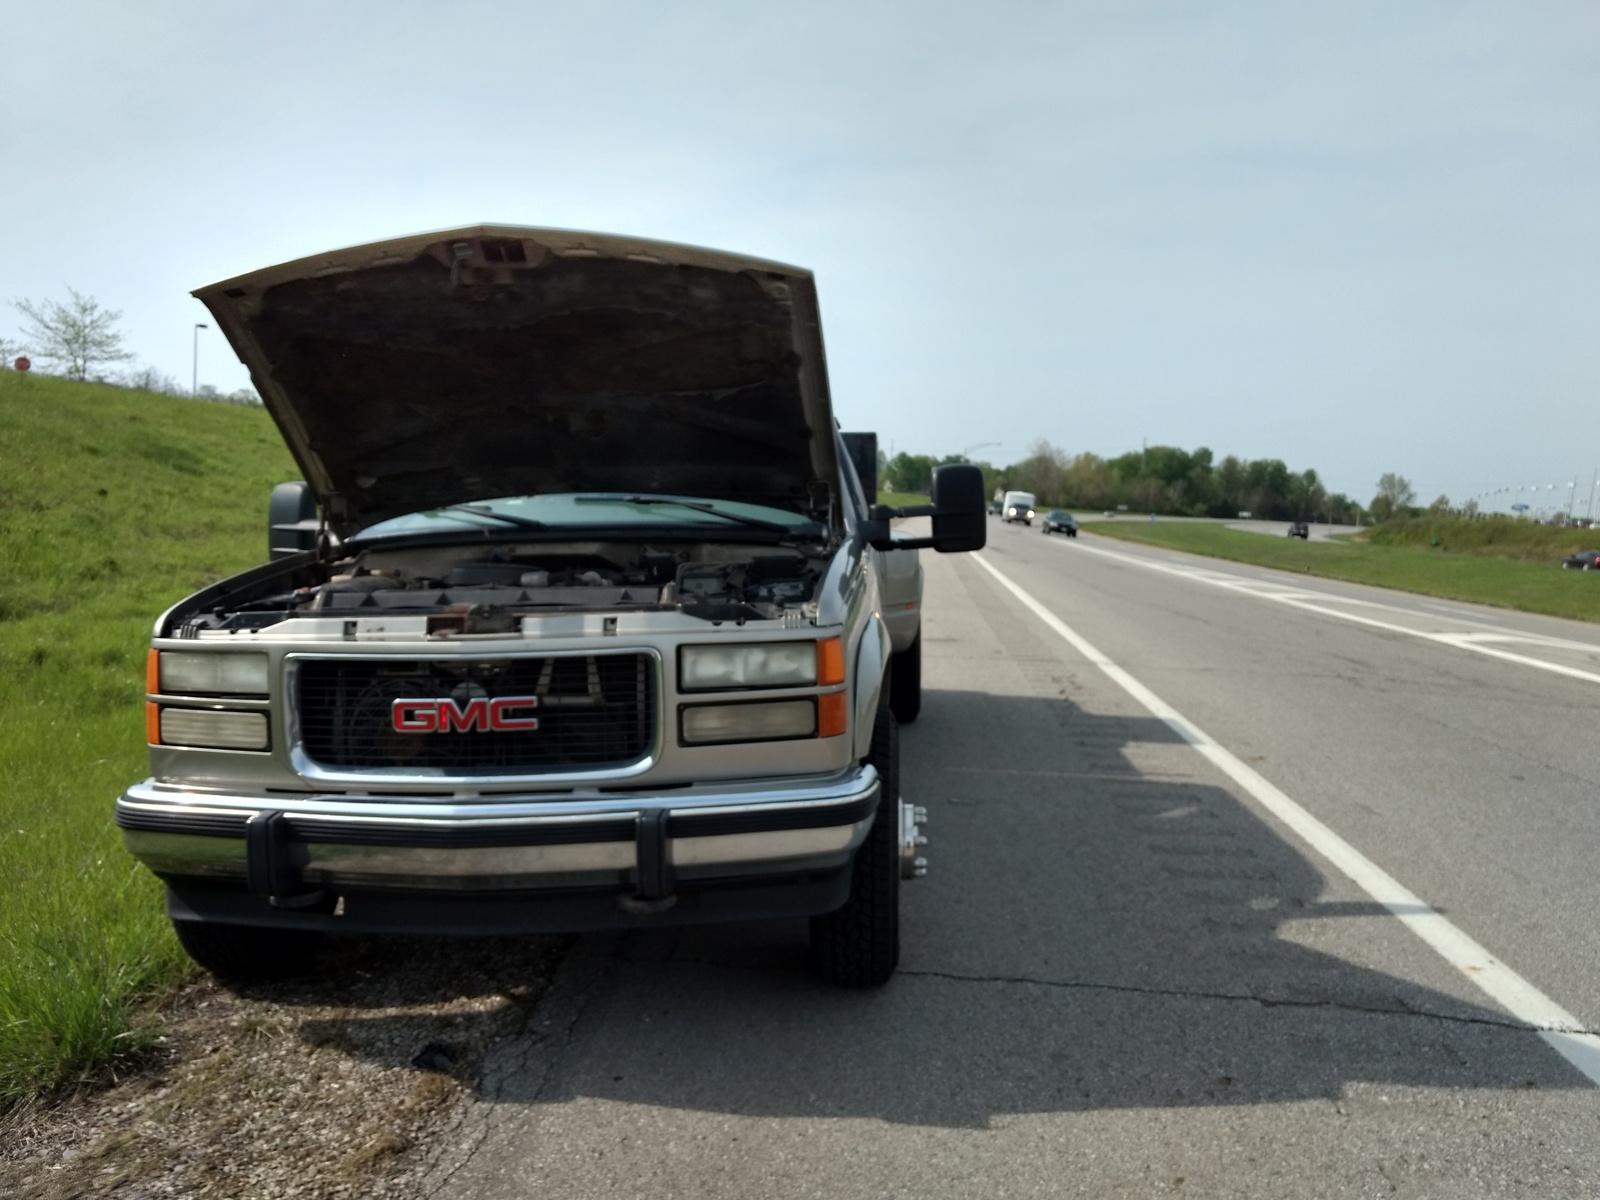 gmc sierra 1500 questions truck suddenly stops running, acting4 people found this helpful 4